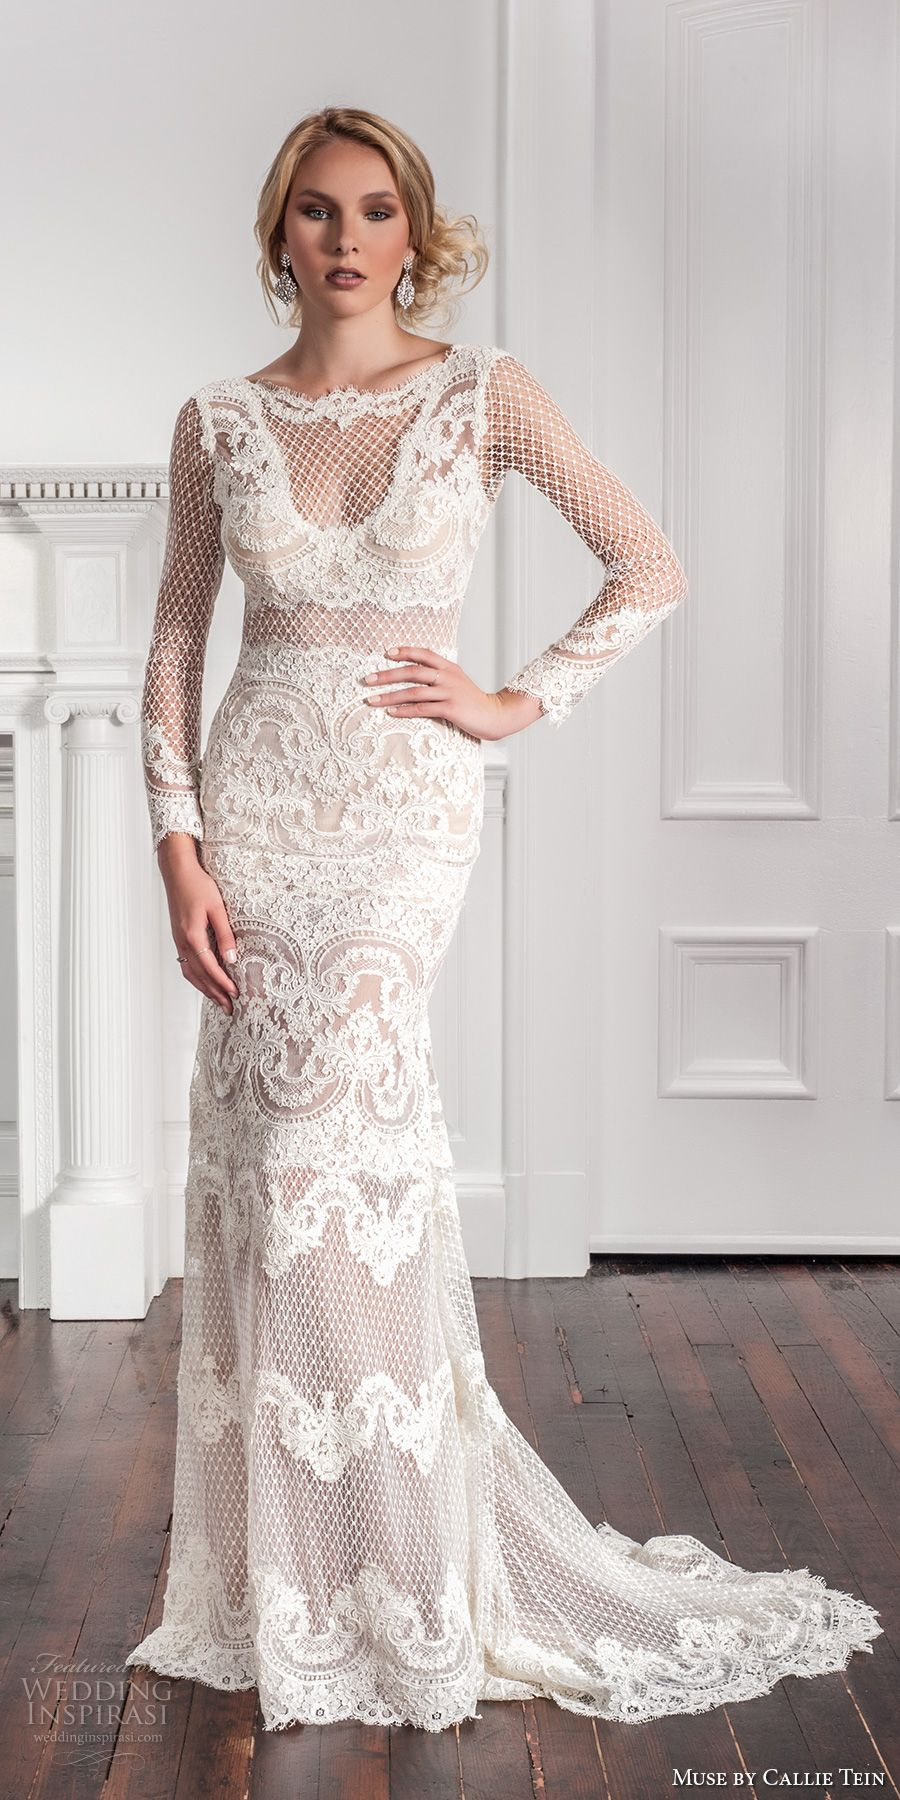 Muse by callie tein fall wedding dresses chapel train